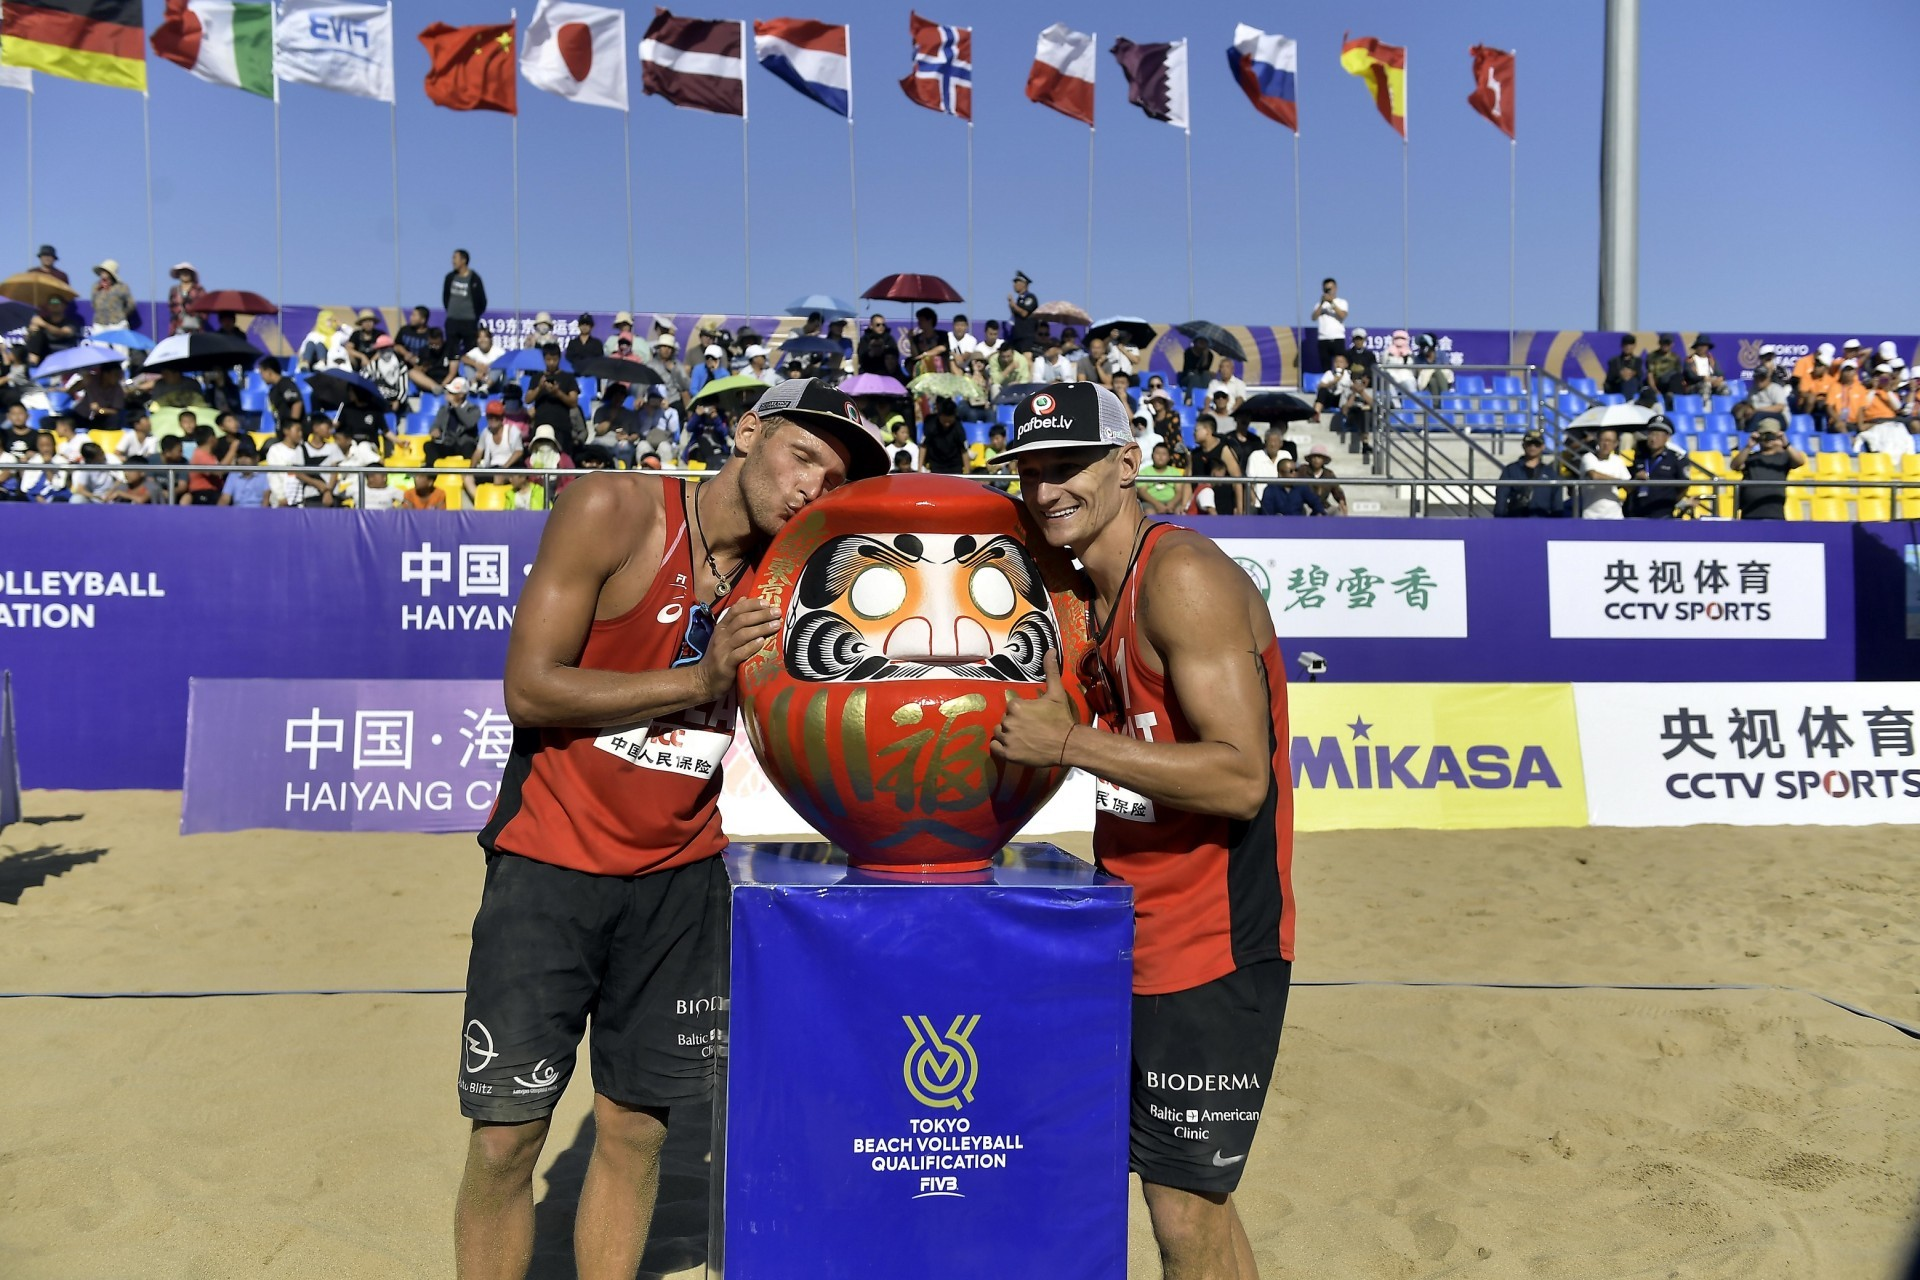 Tocs and Plavins pose with the Japanese Daruma doll (Photocredit: FIVB)